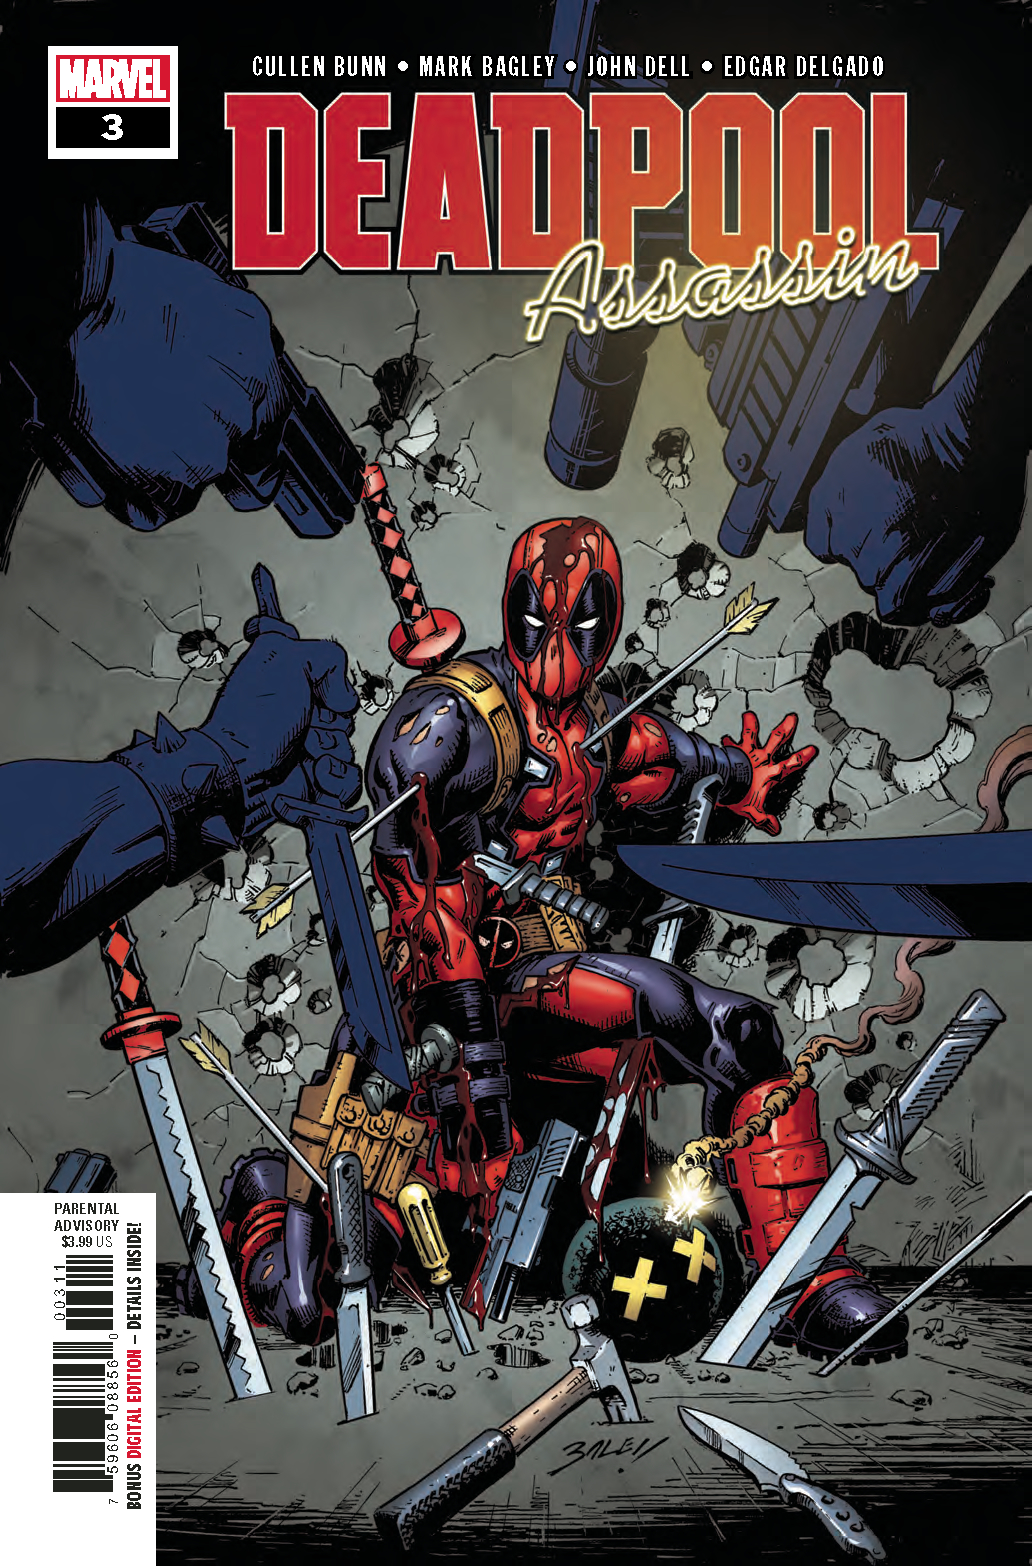 DEADPOOL ASSASSIN #3 (OF 6)